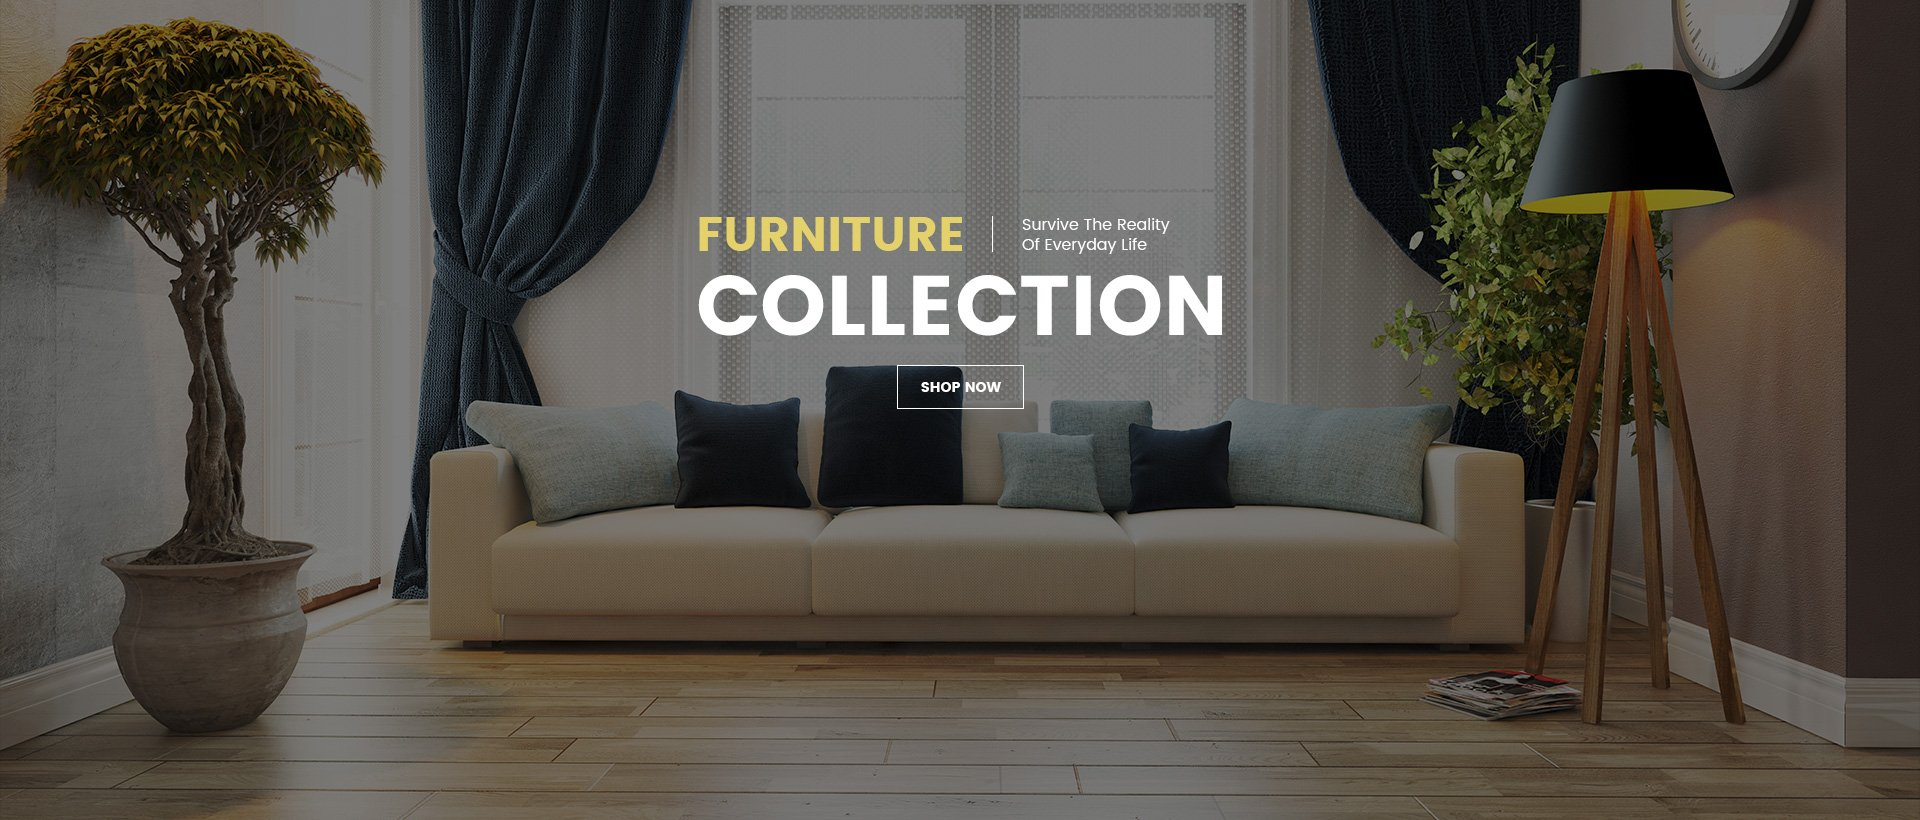 Furniture Collection